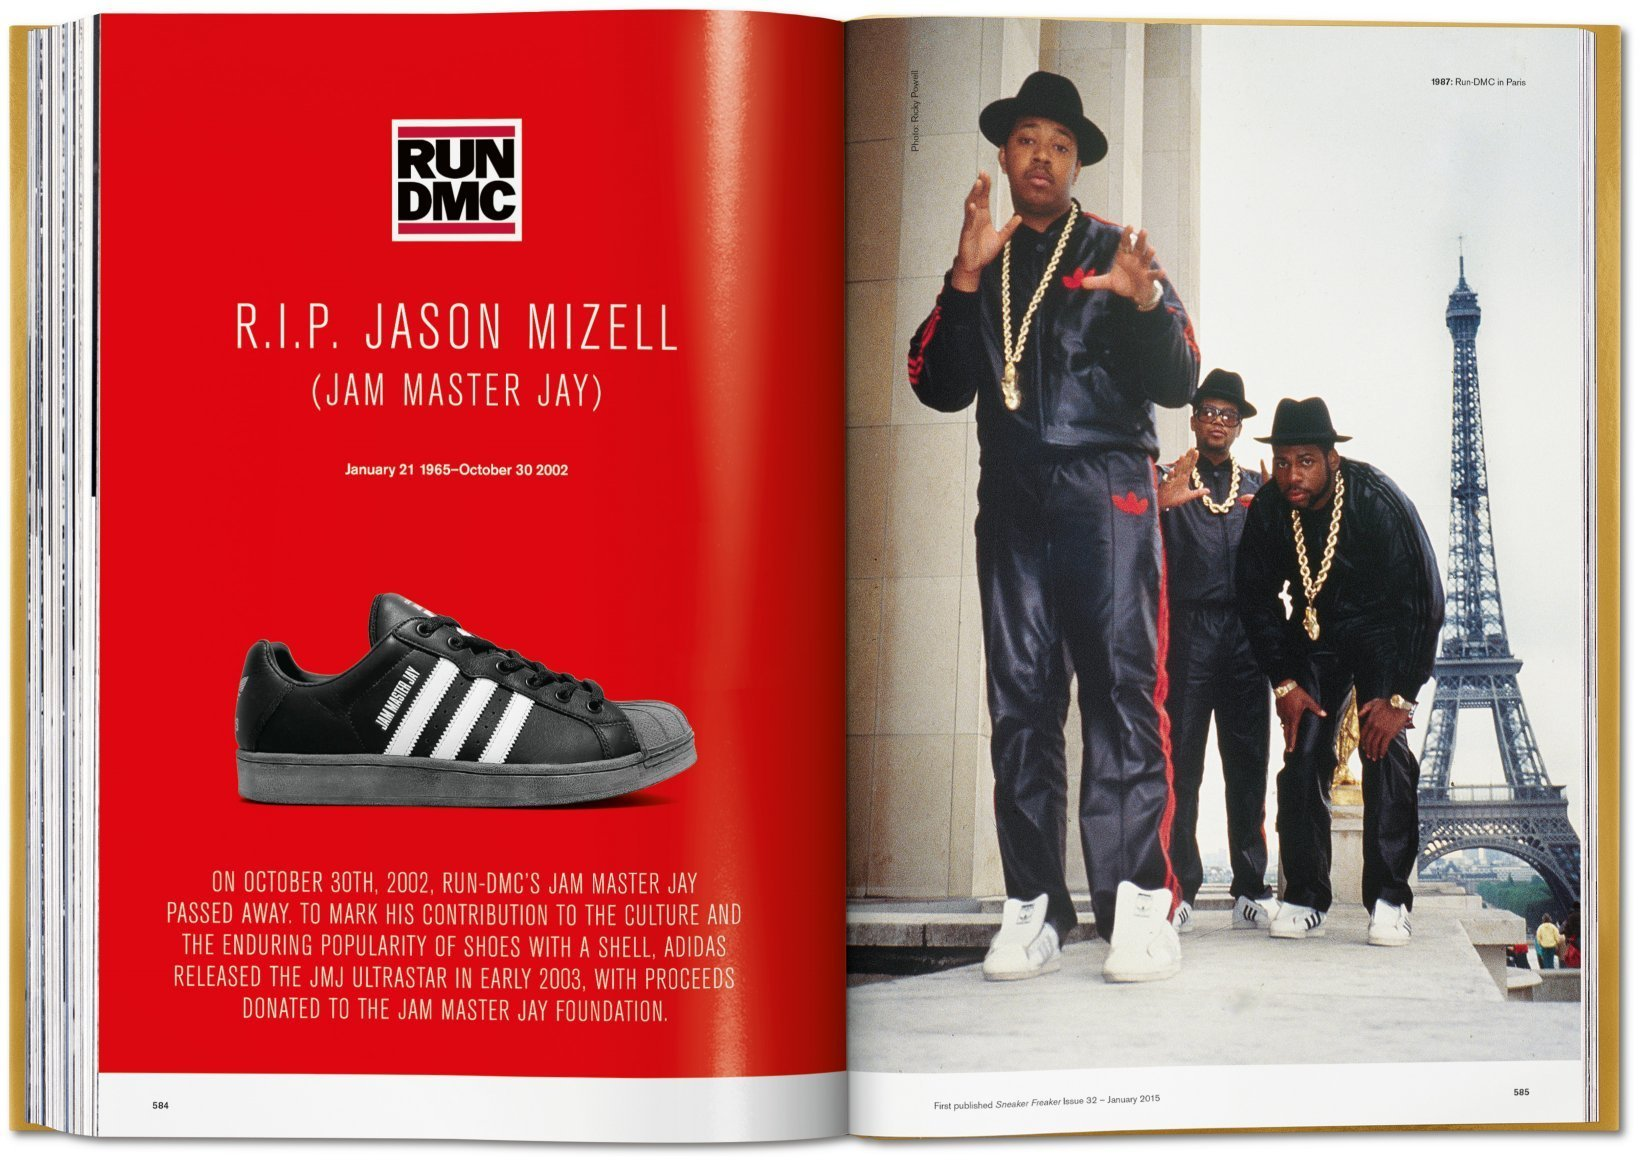 7ae8a2e804 The Ultimate Sneaker Book - image 6 · Sneaker Freaker. The Ultimate Sneaker  Book - image 7